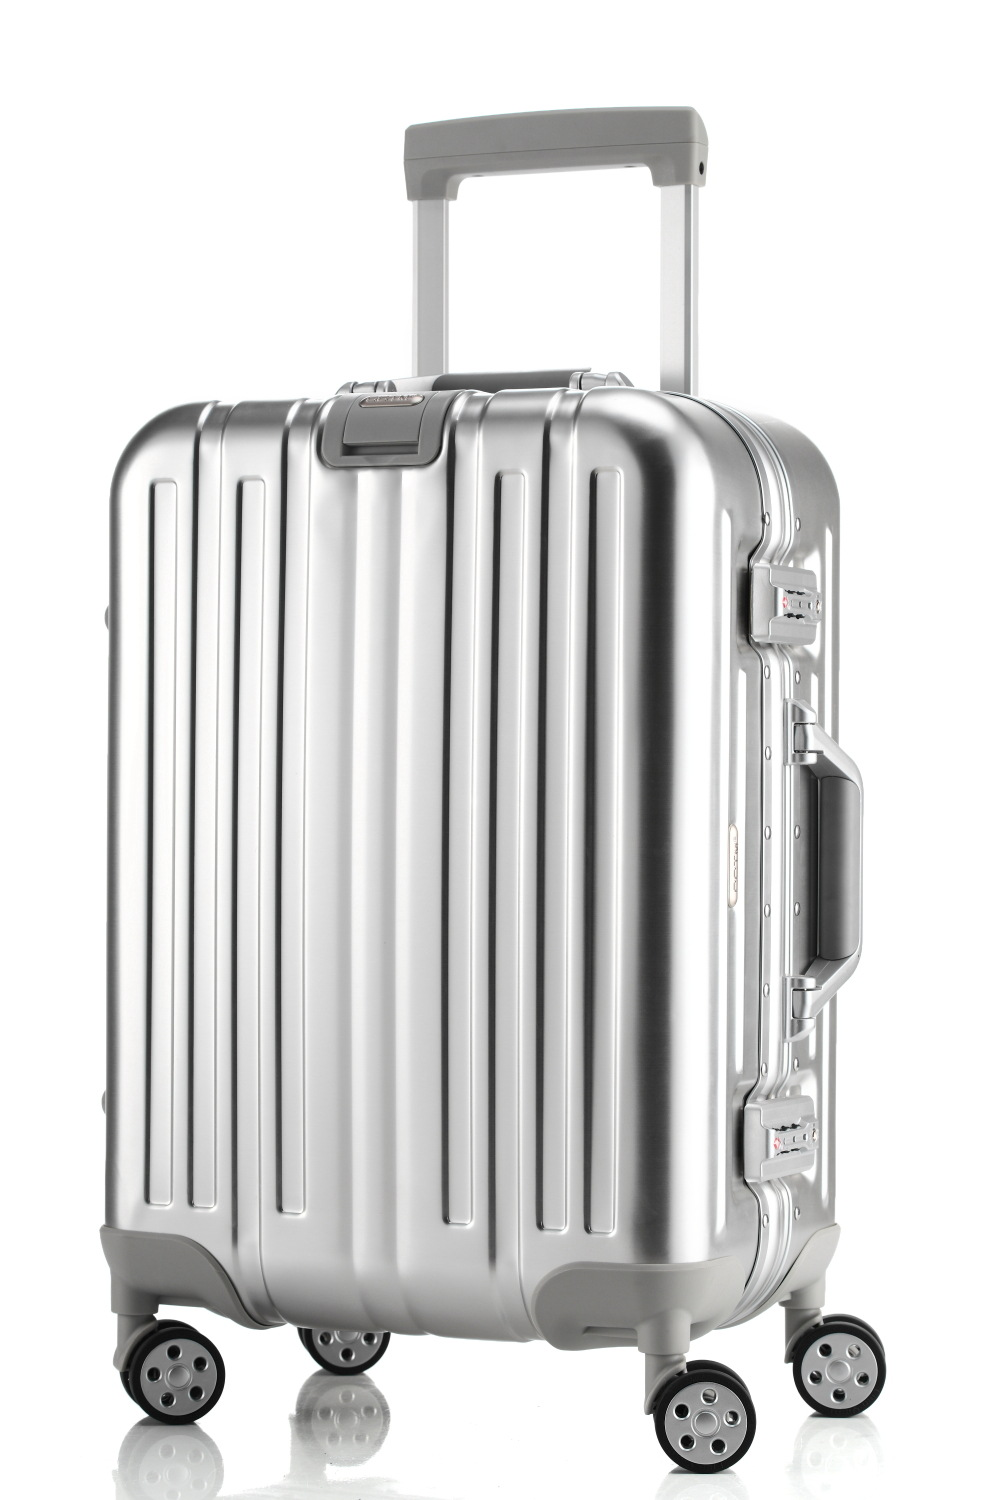 Aluminium magnesium alloy rod box high-end aluminum suitcase and boarding box universal wheel business luggage bags